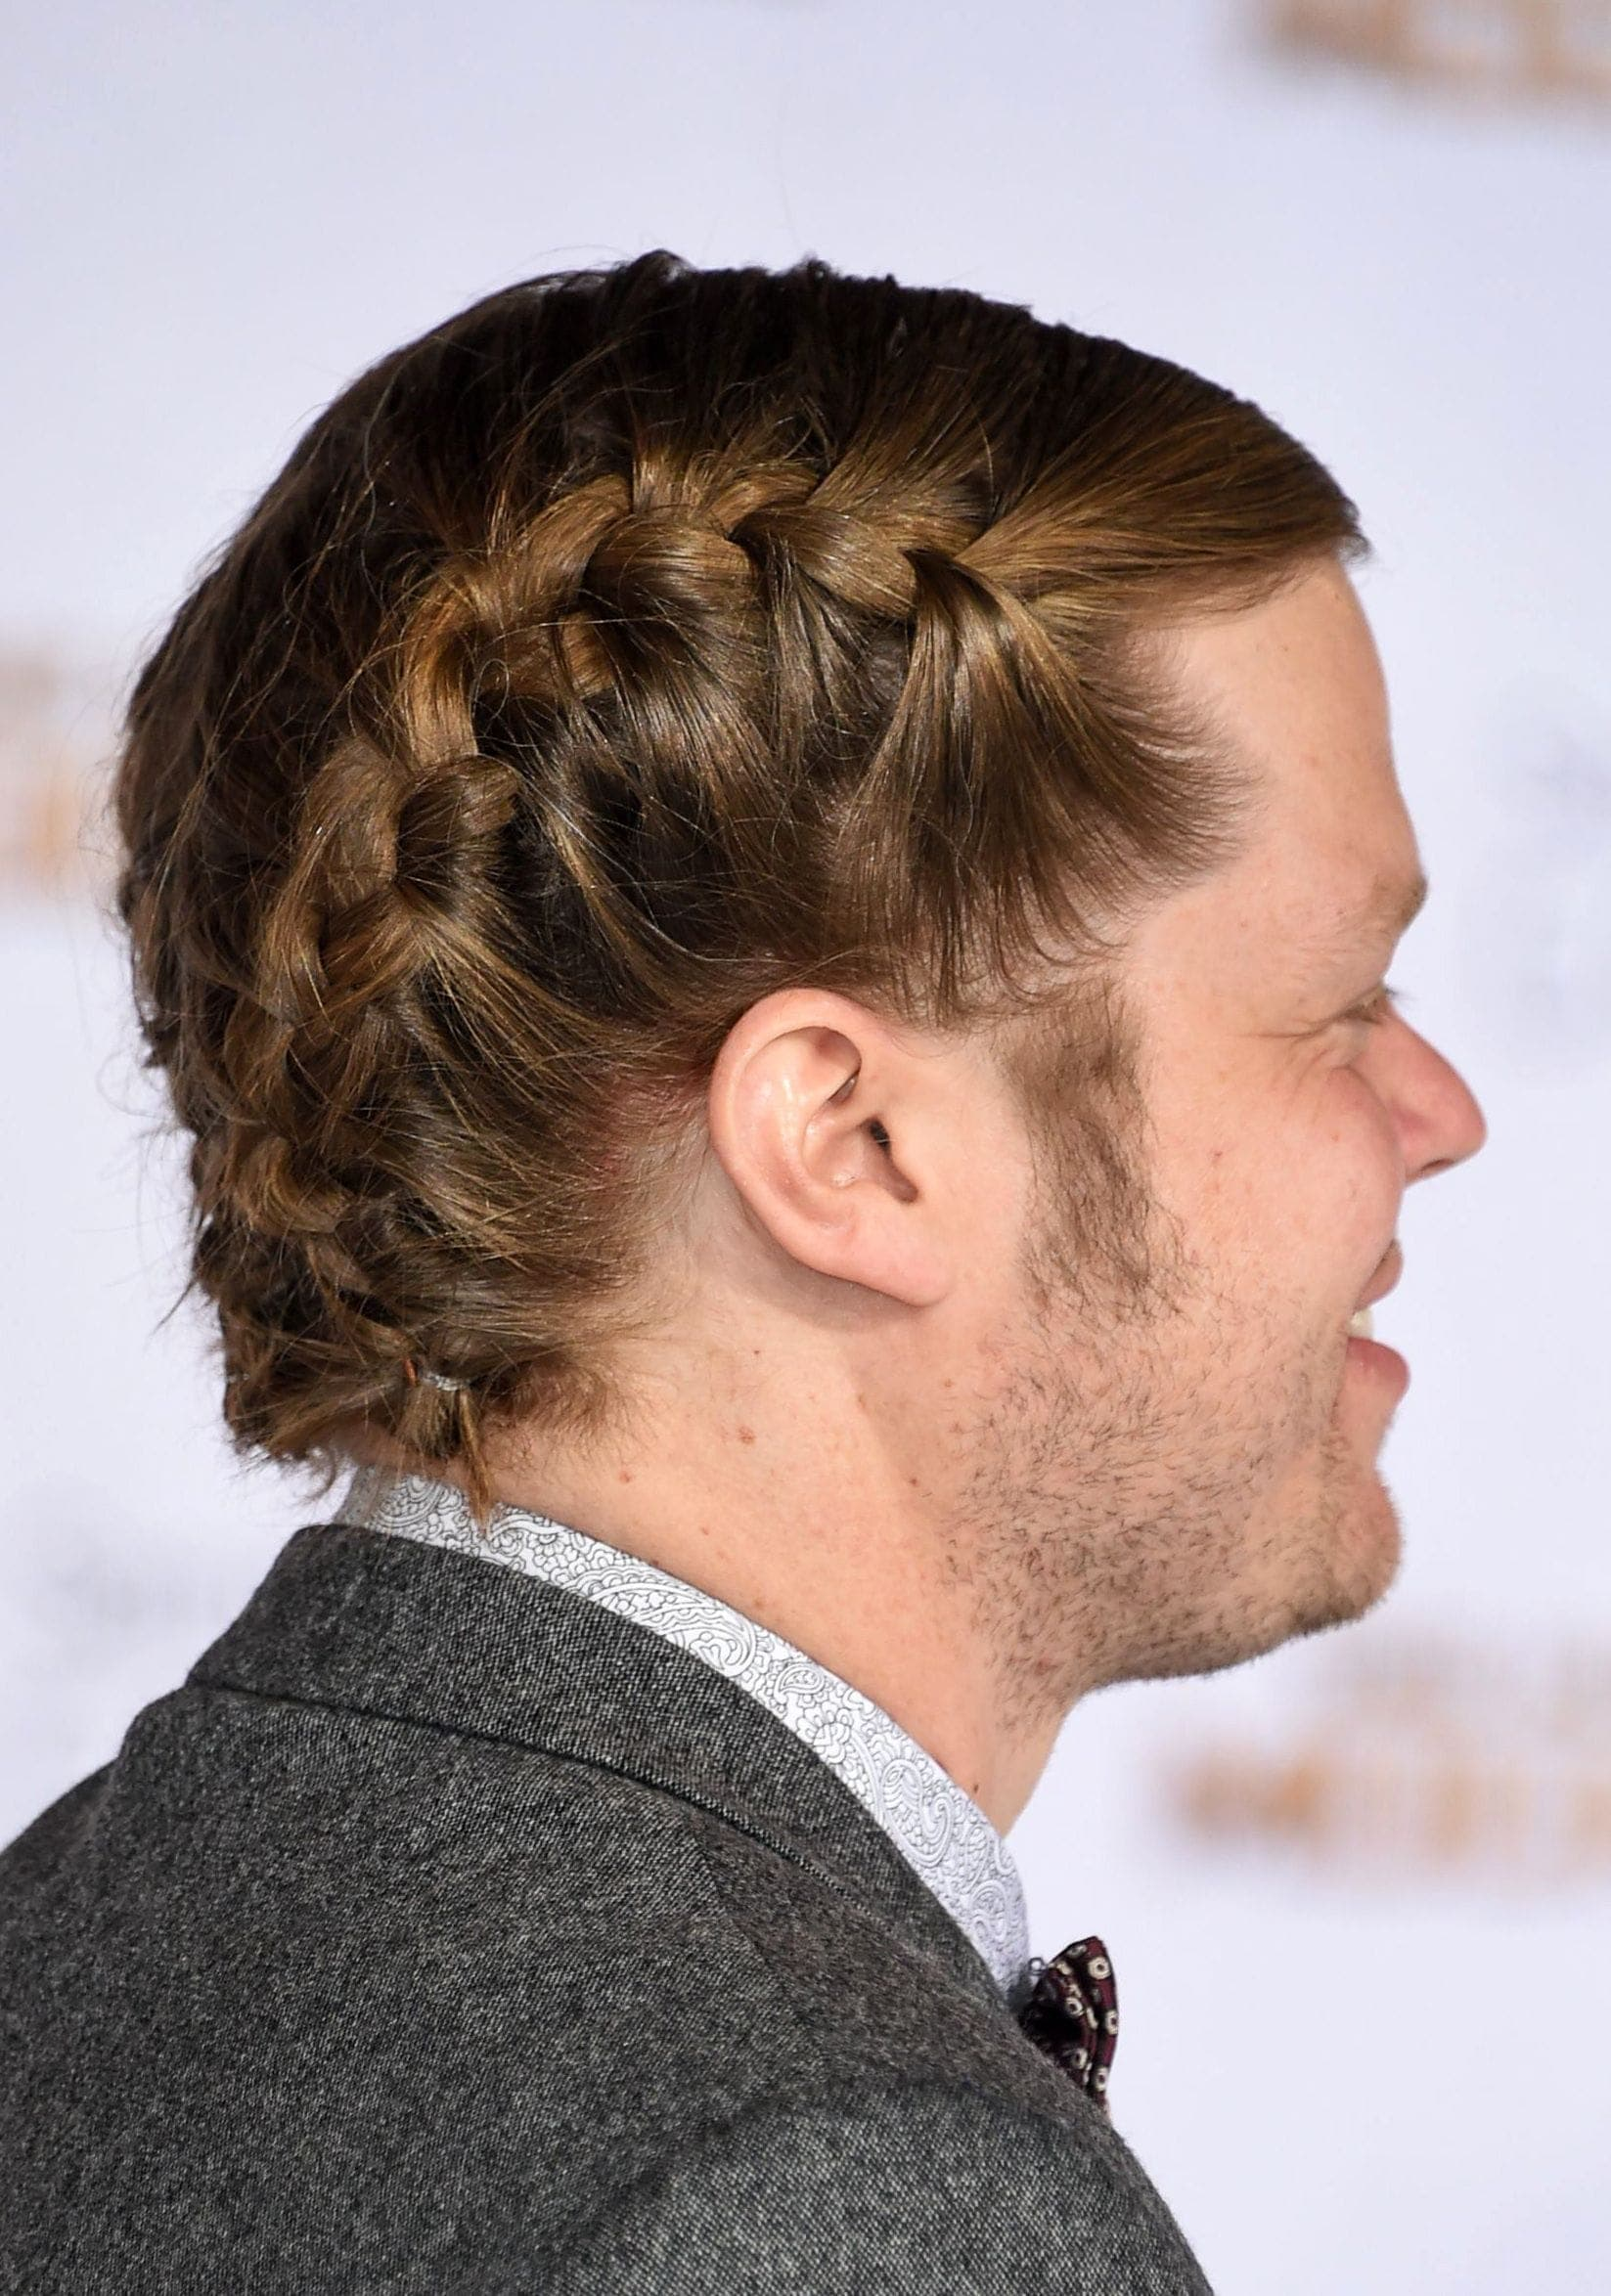 men with braids: All Things Hair - IMAGE - Elden Henson French braids